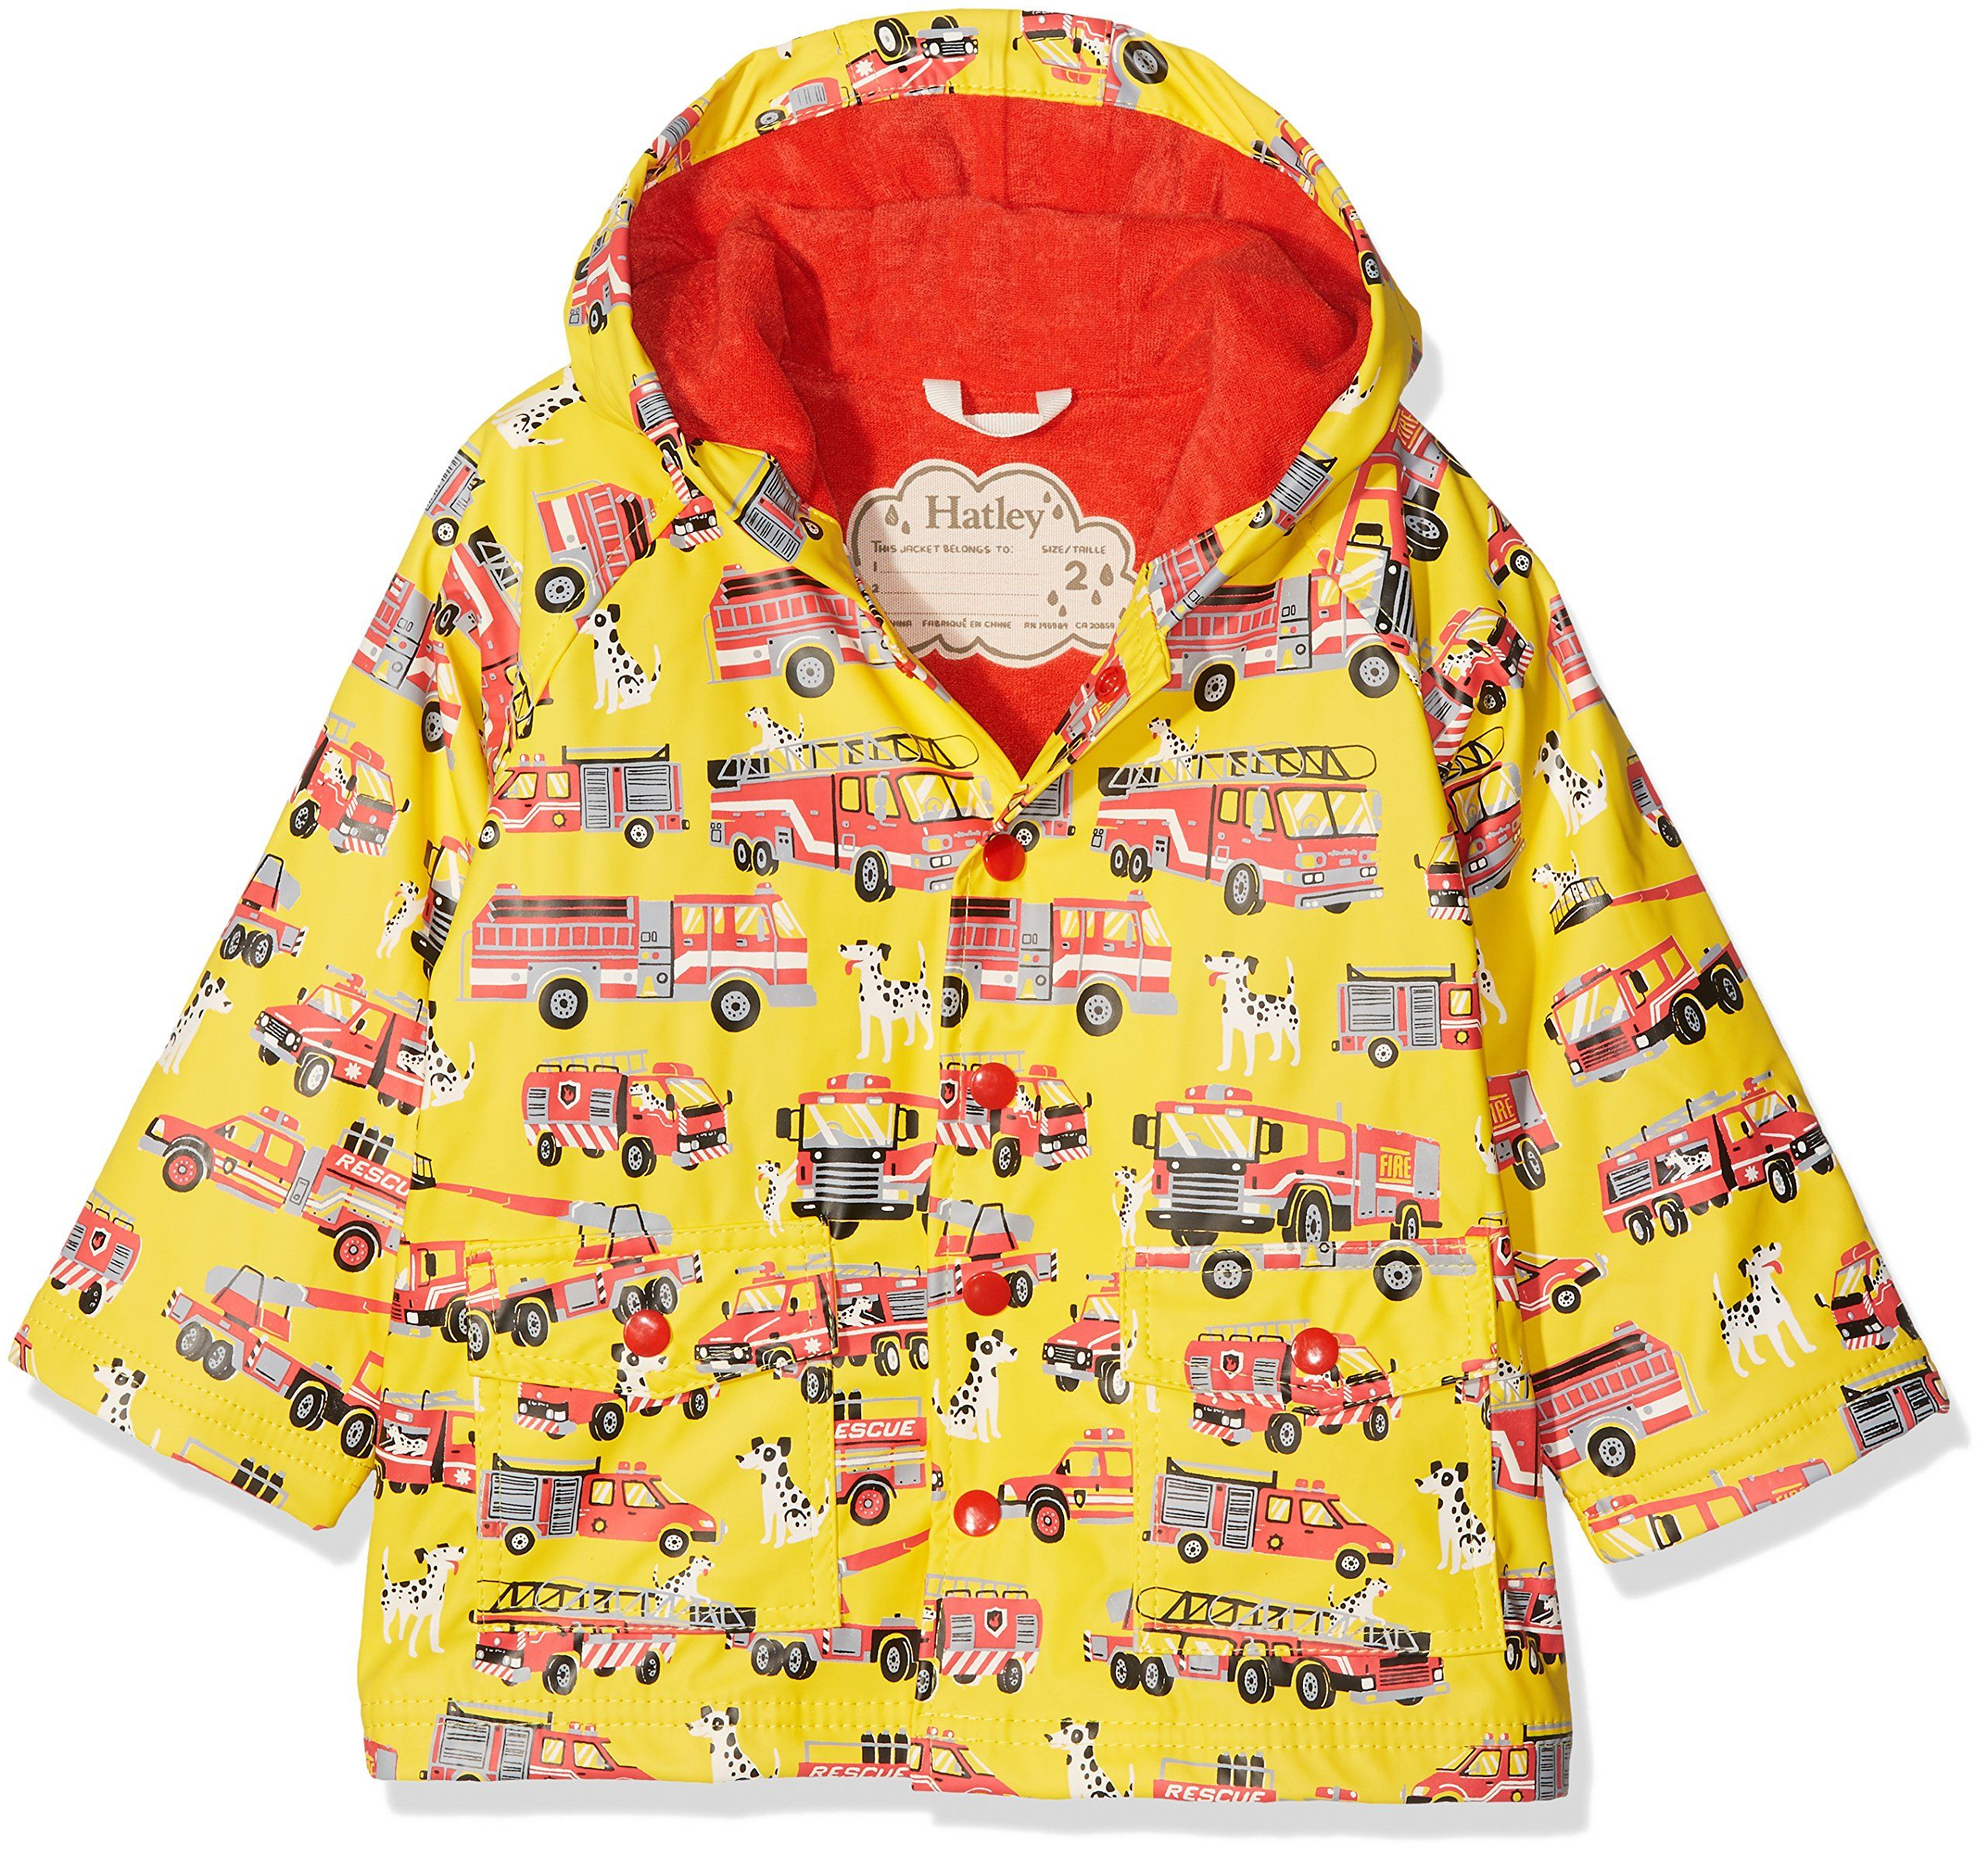 Early Prime Day Deal: Save up to 54% on Hatley's colourful ...